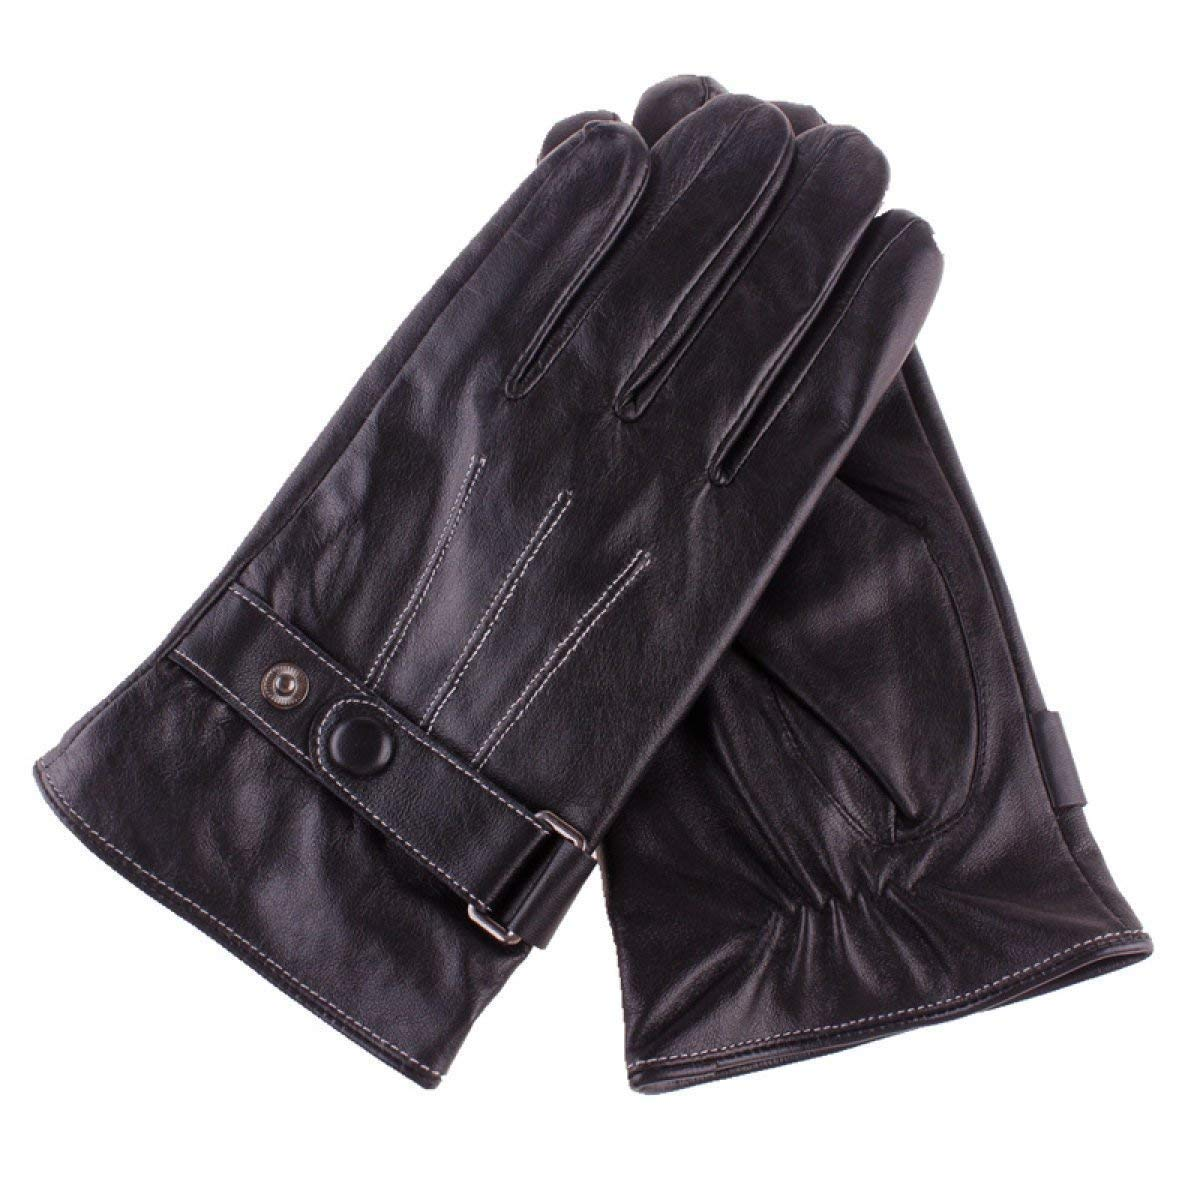 LLIND Home Gloves Touch Screen Male Fashion Practical Color : Black, Size : X-Large